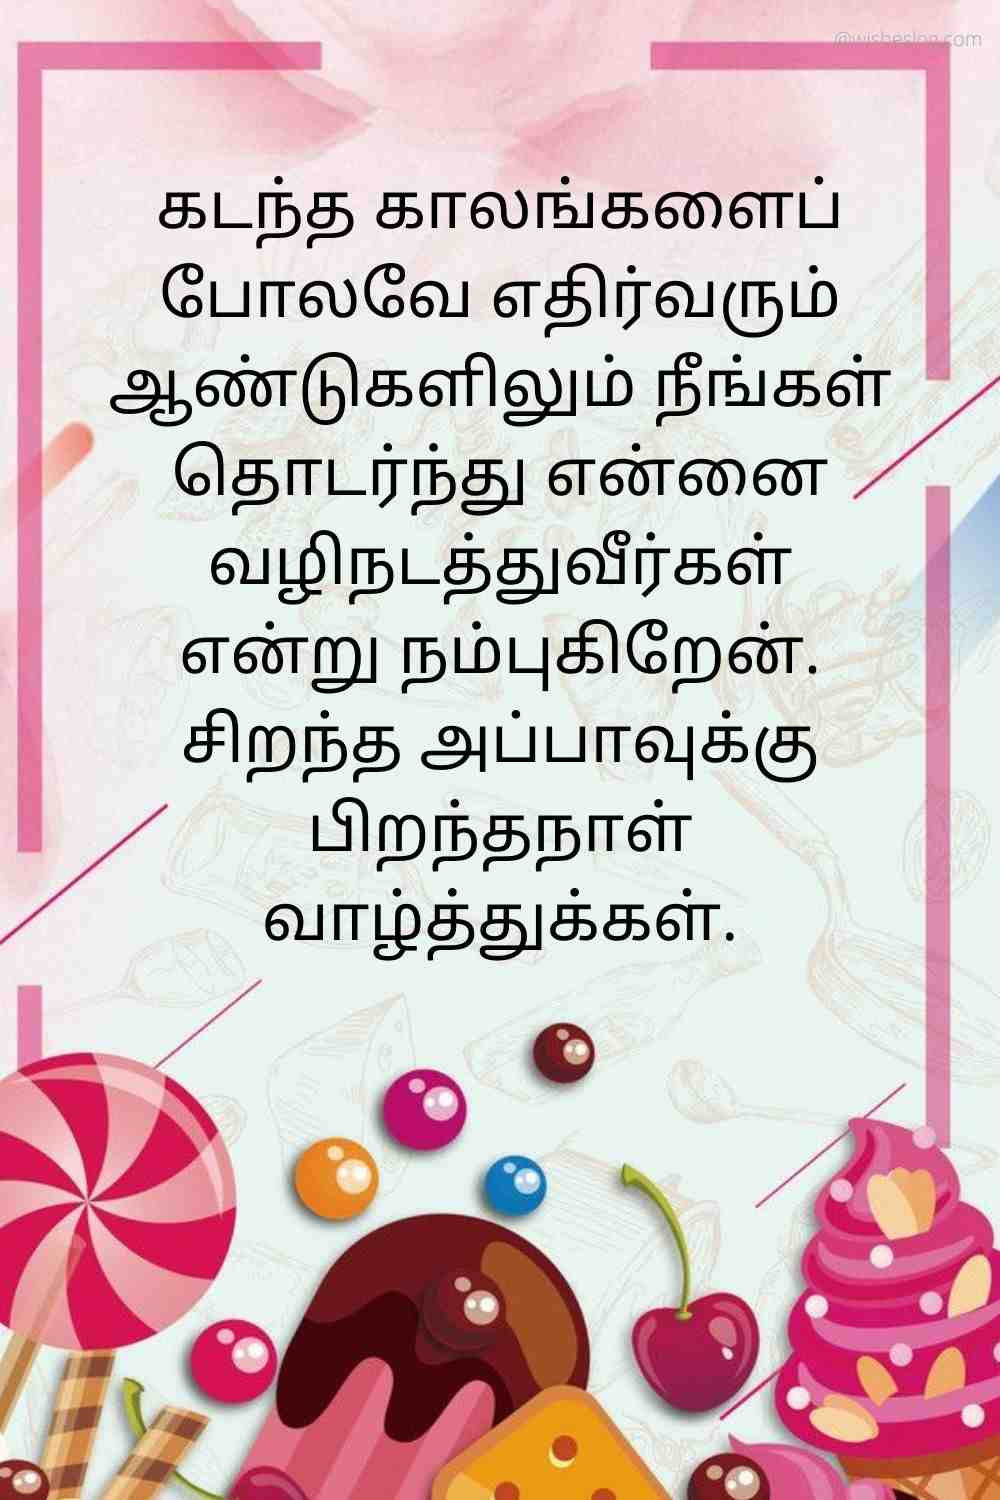 birthday wishes for father in tamil